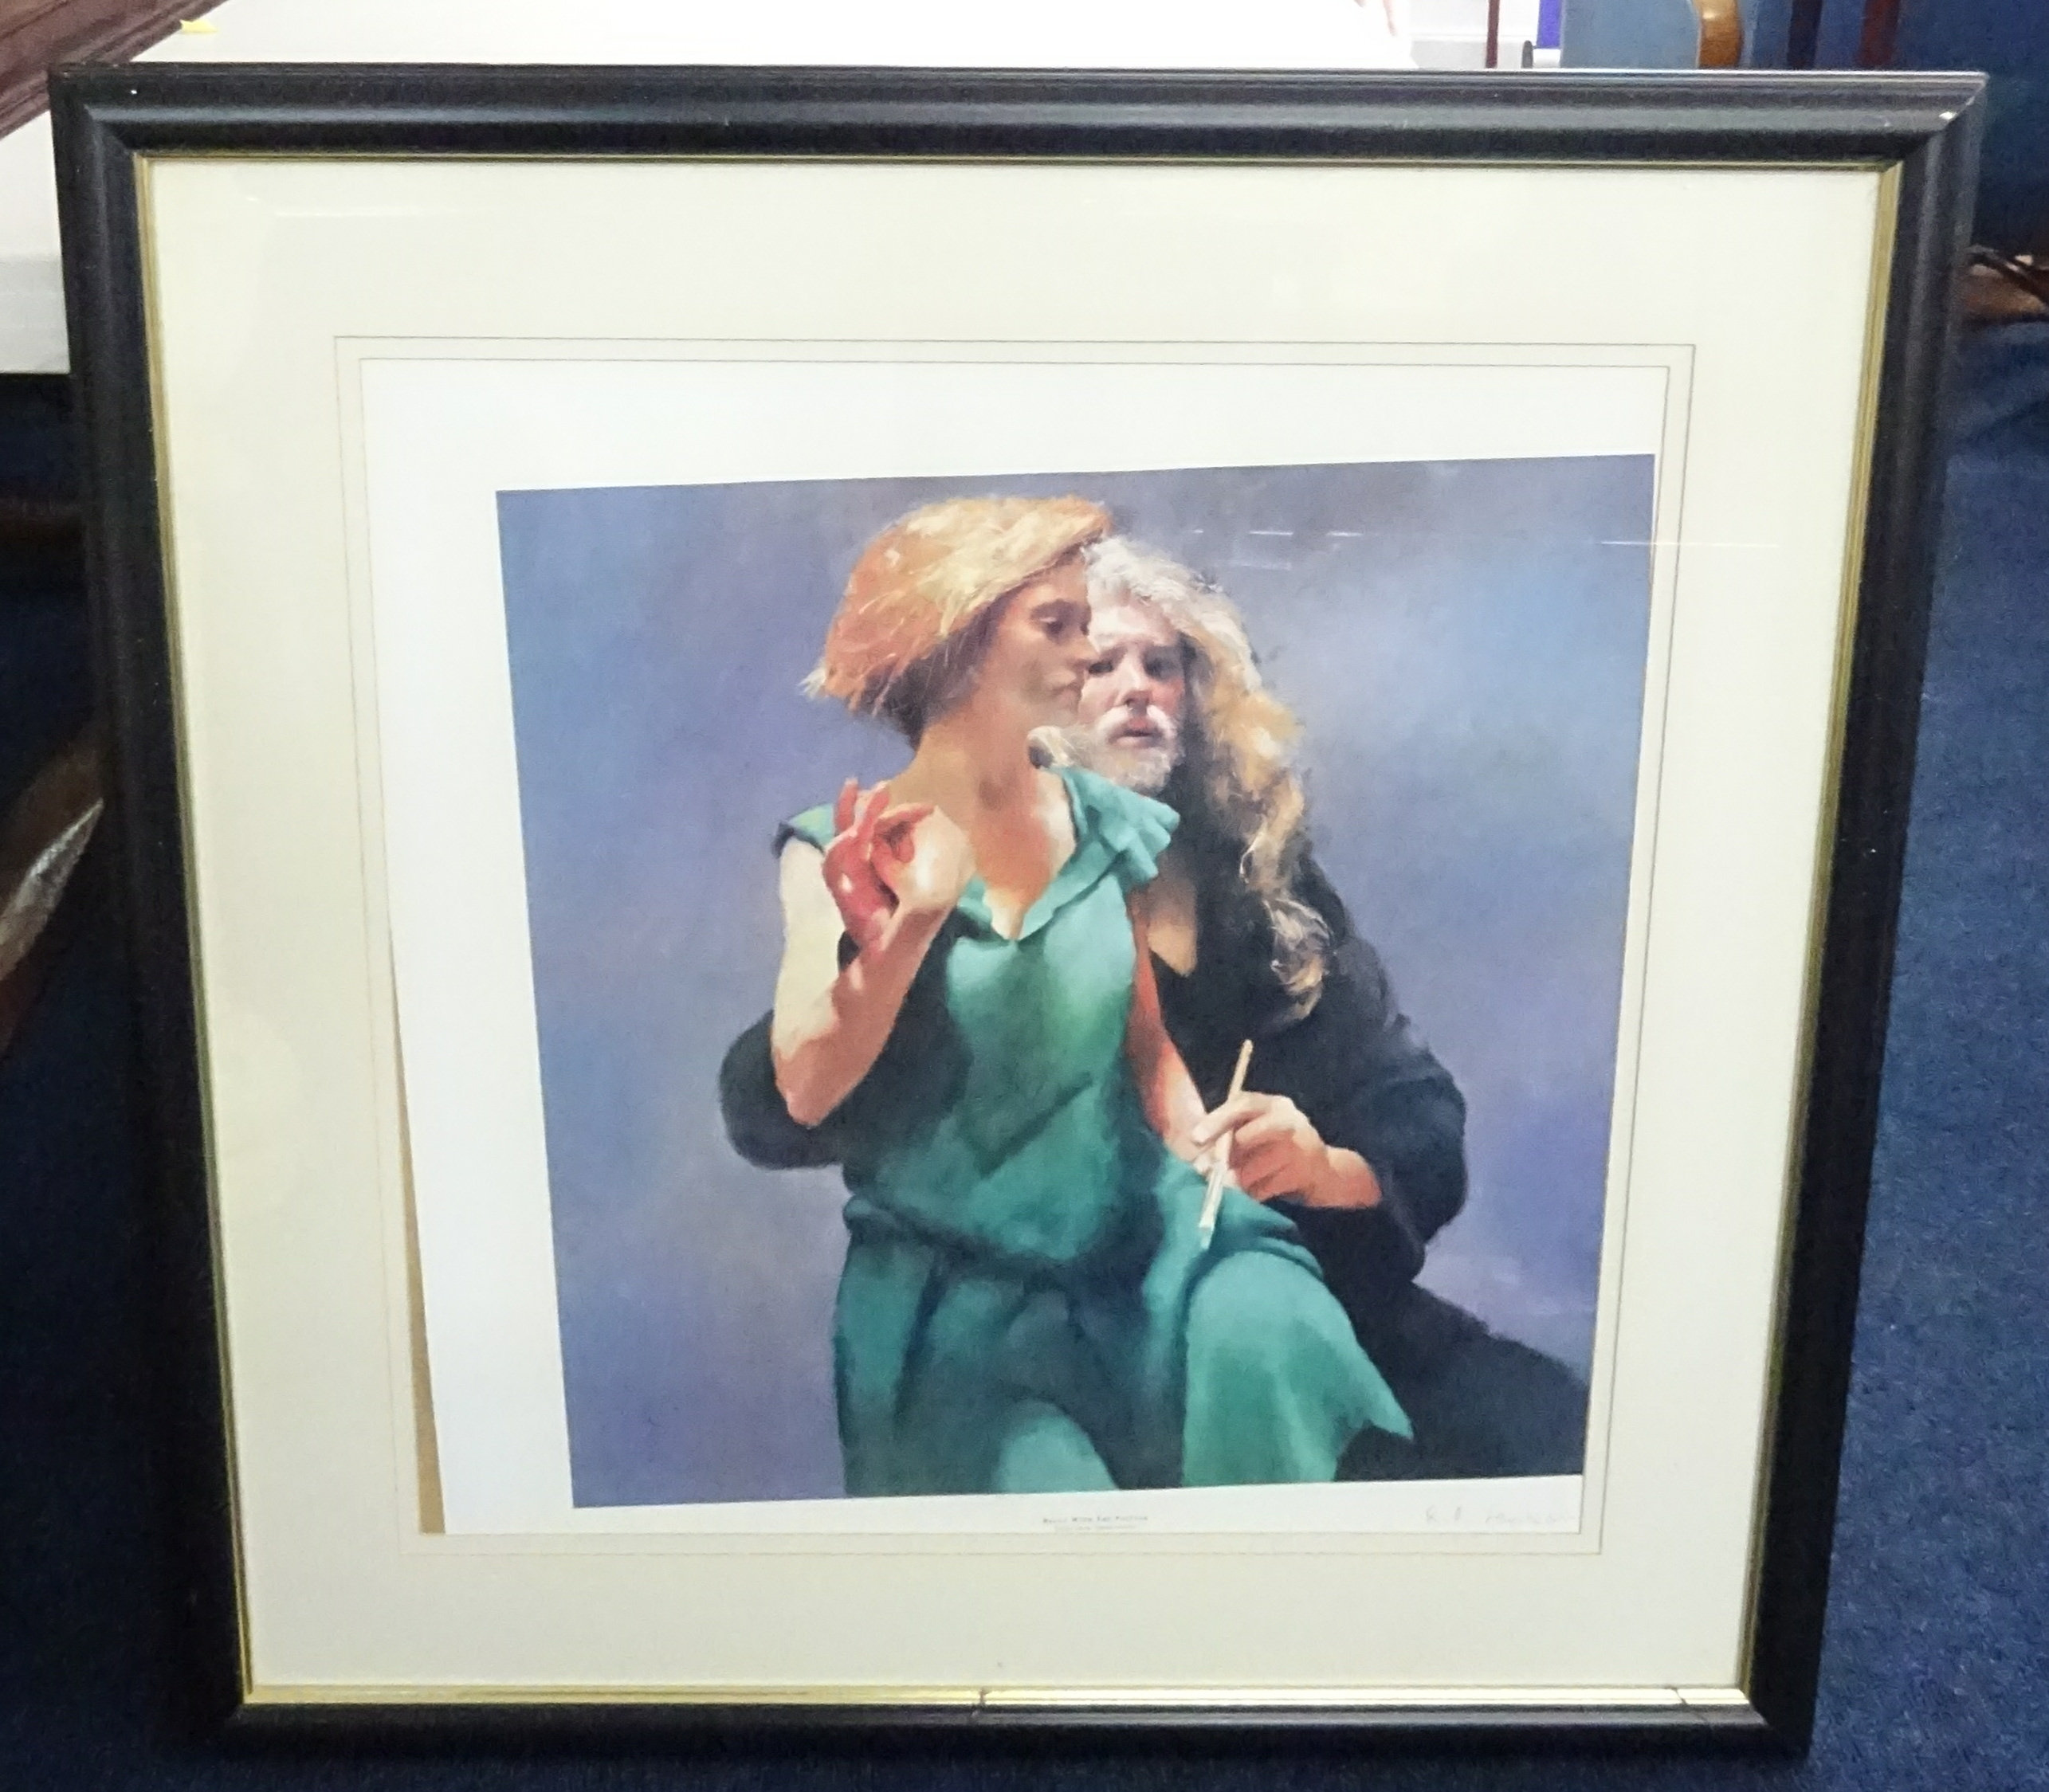 Lot 056 - Robert Lenkiewicz (1941-2002) signed print 'Bella with the painter', number 2550.